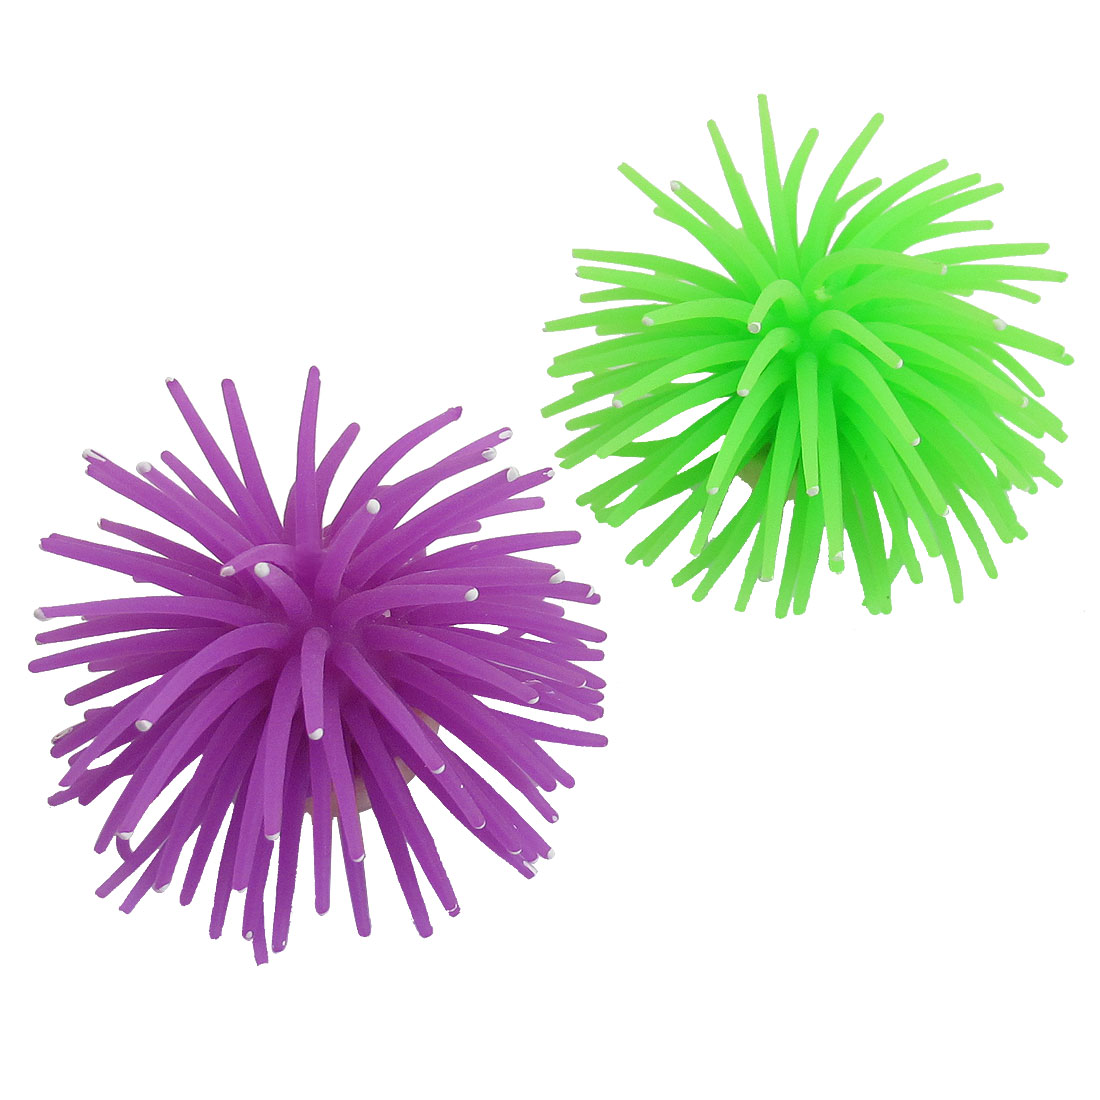 2 Pcs Aquarium Decorative Purple Green Aquatic Soft Silicone Corals w Base